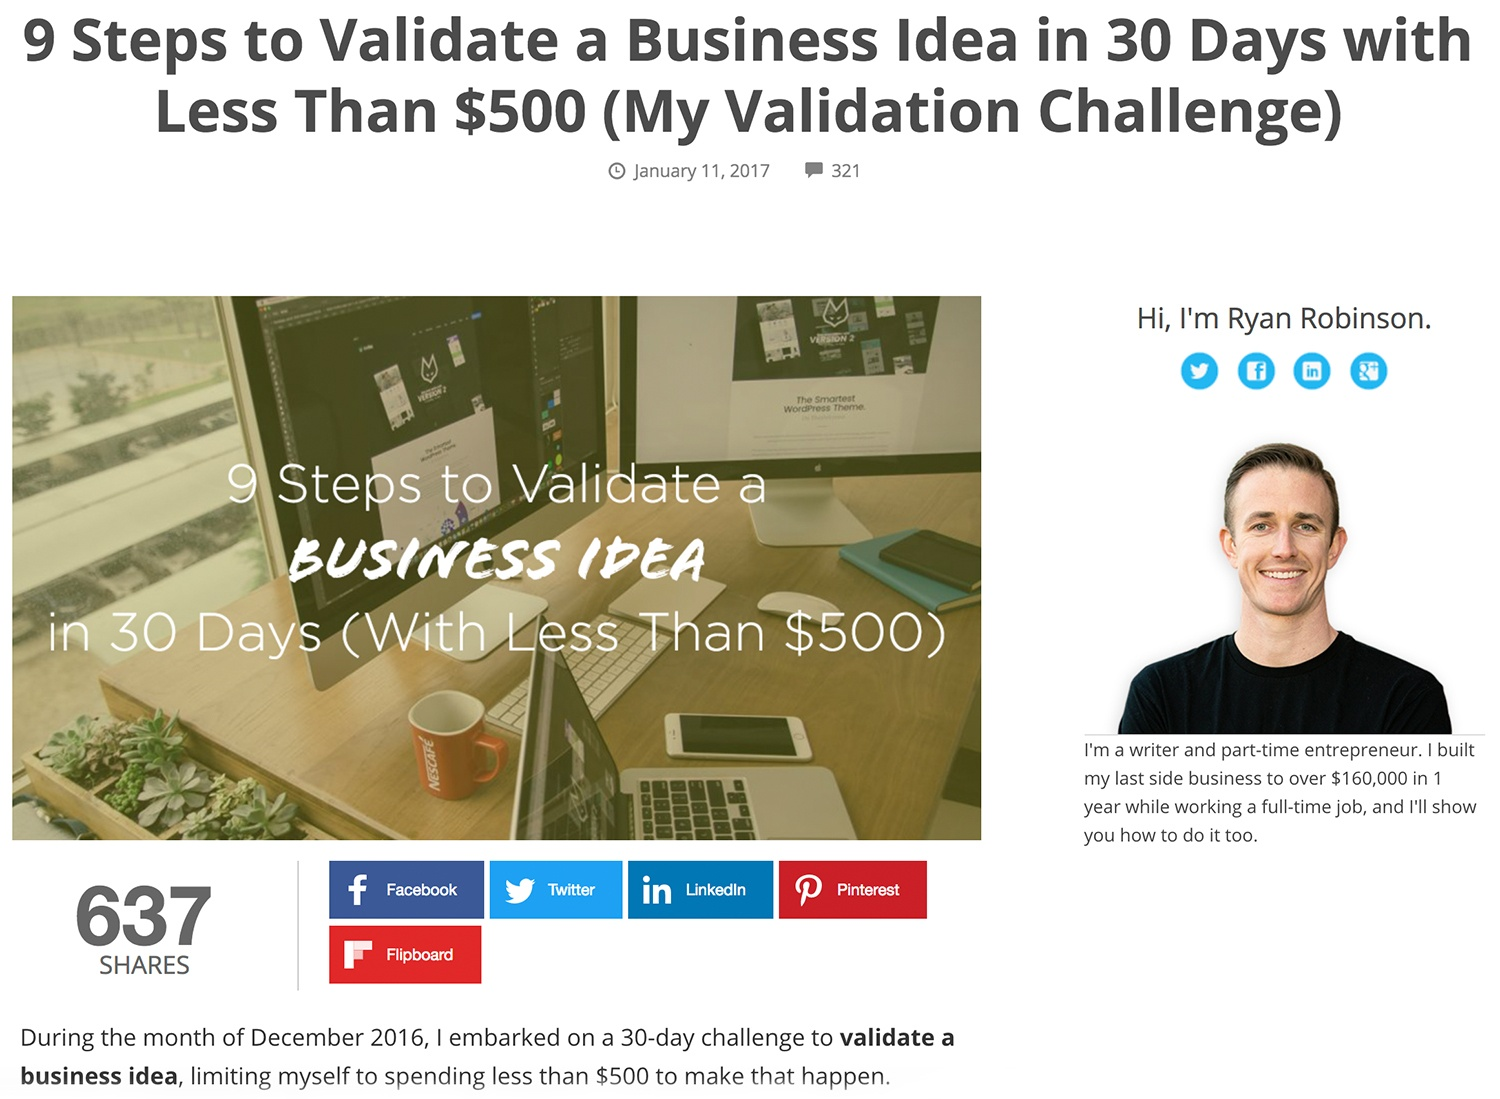 Lead Generation Ideas Validation Blog Challenge Ryan Robinson ryrob.jpg